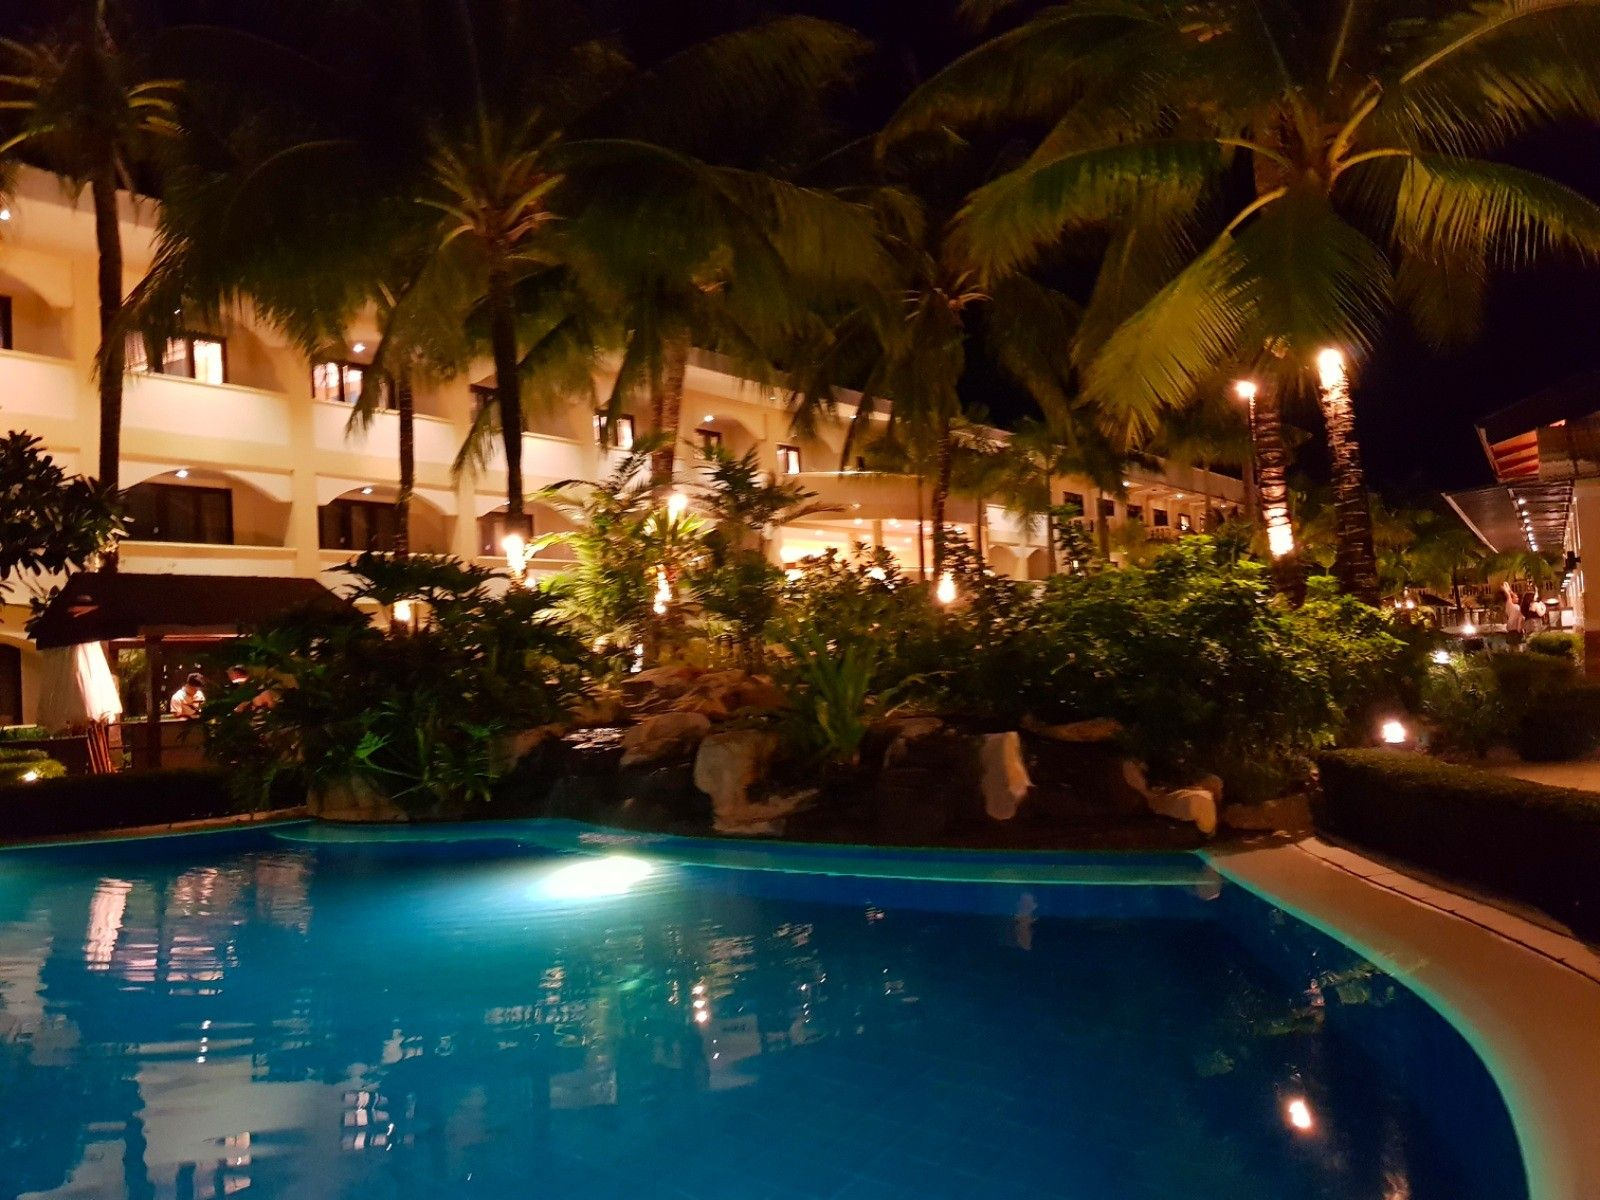 Swimming Pool Lighting And Garden Landscaping Ideas